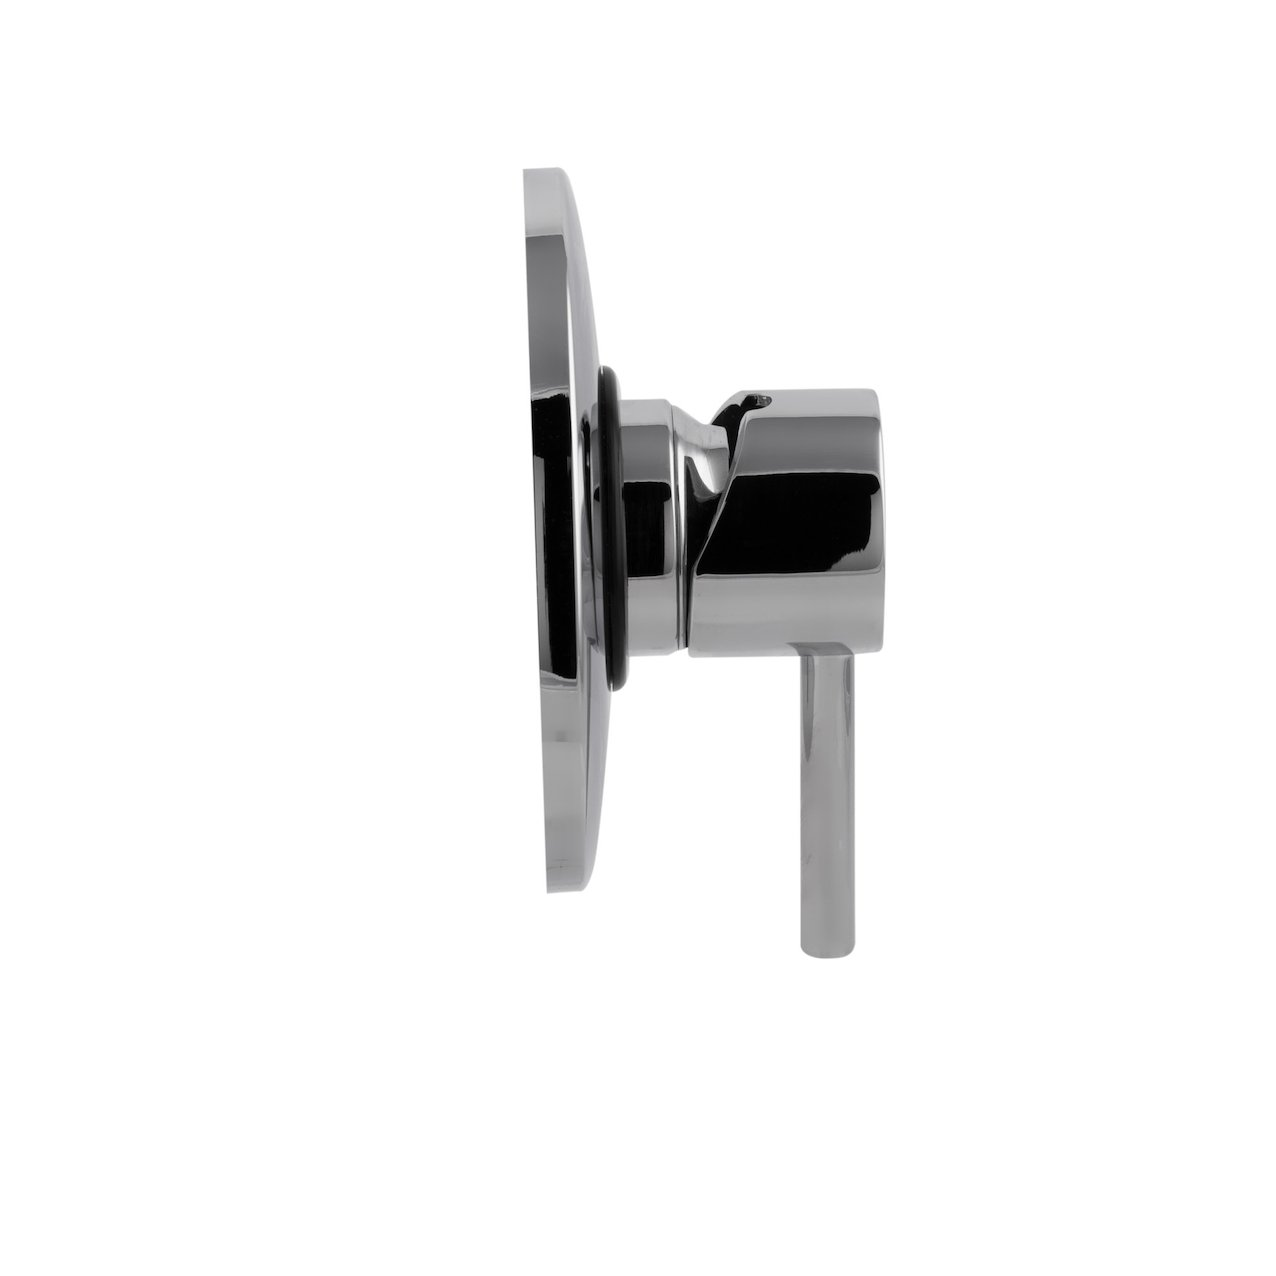 Concealed Shower Mixer Fashion - 360 - 0